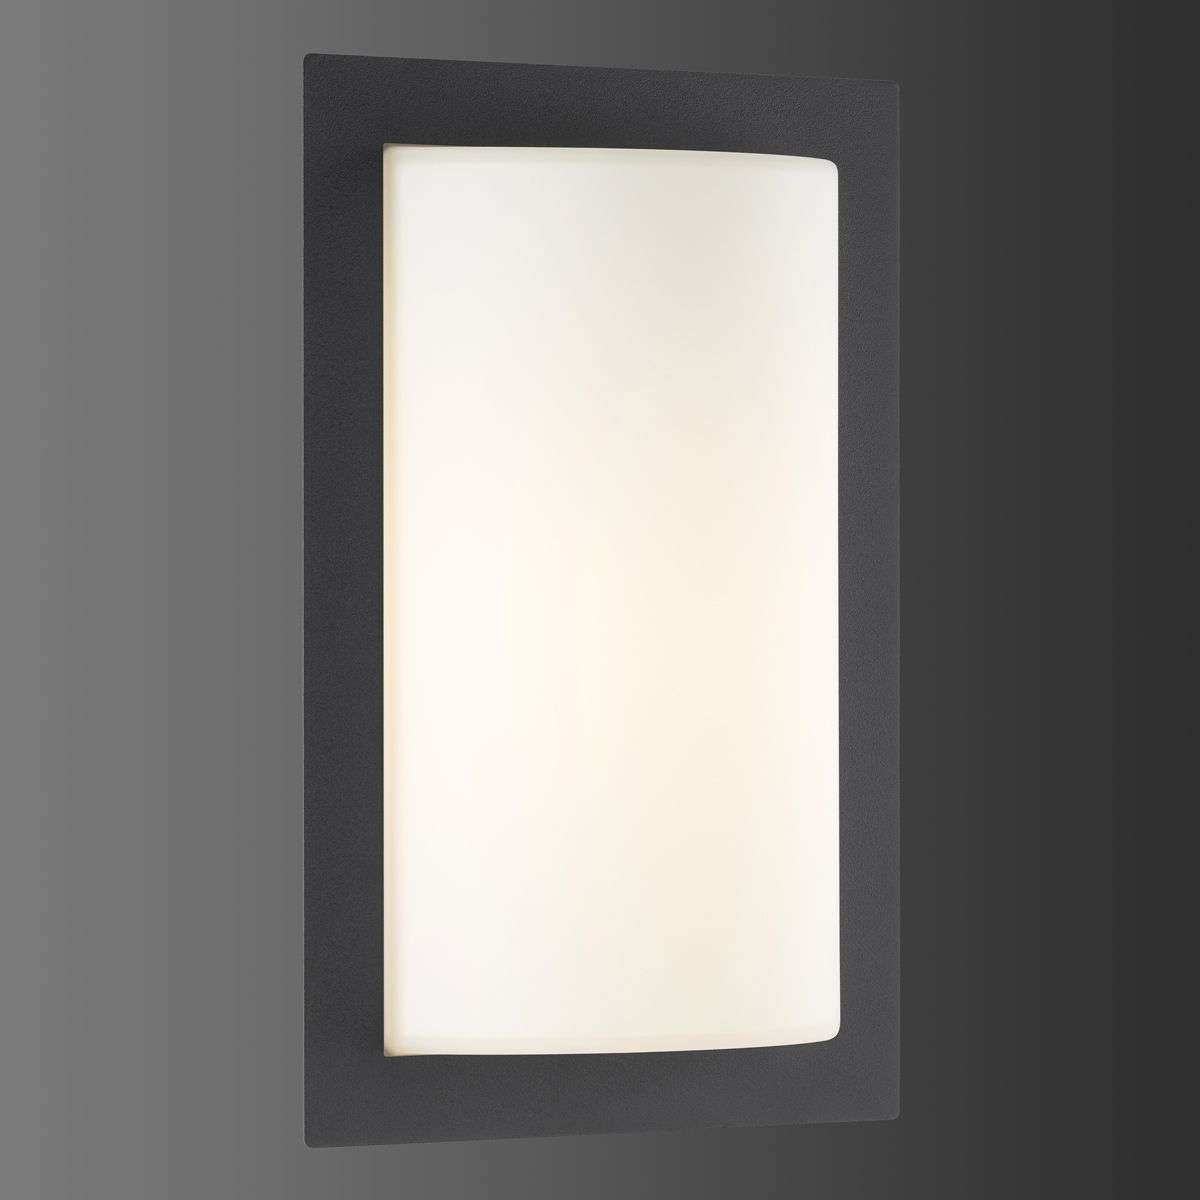 Luis Led Outdoor Wall Light With Motion Detector 6068085 31